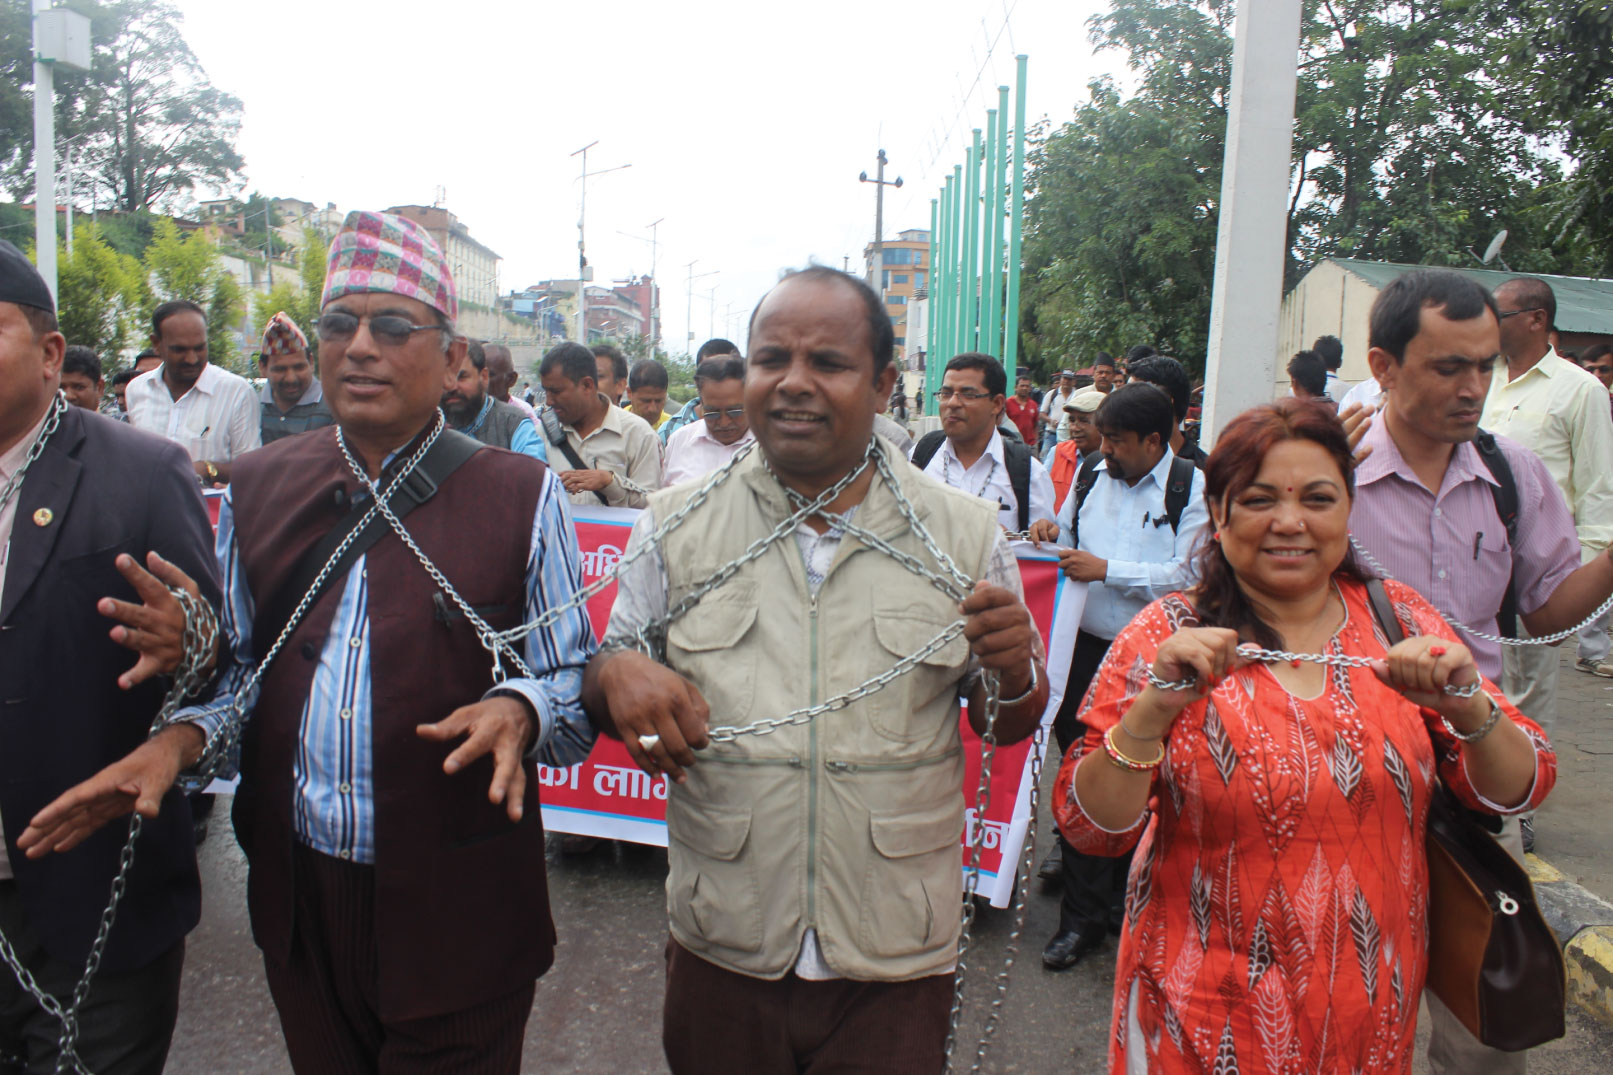 Marching at caste protest